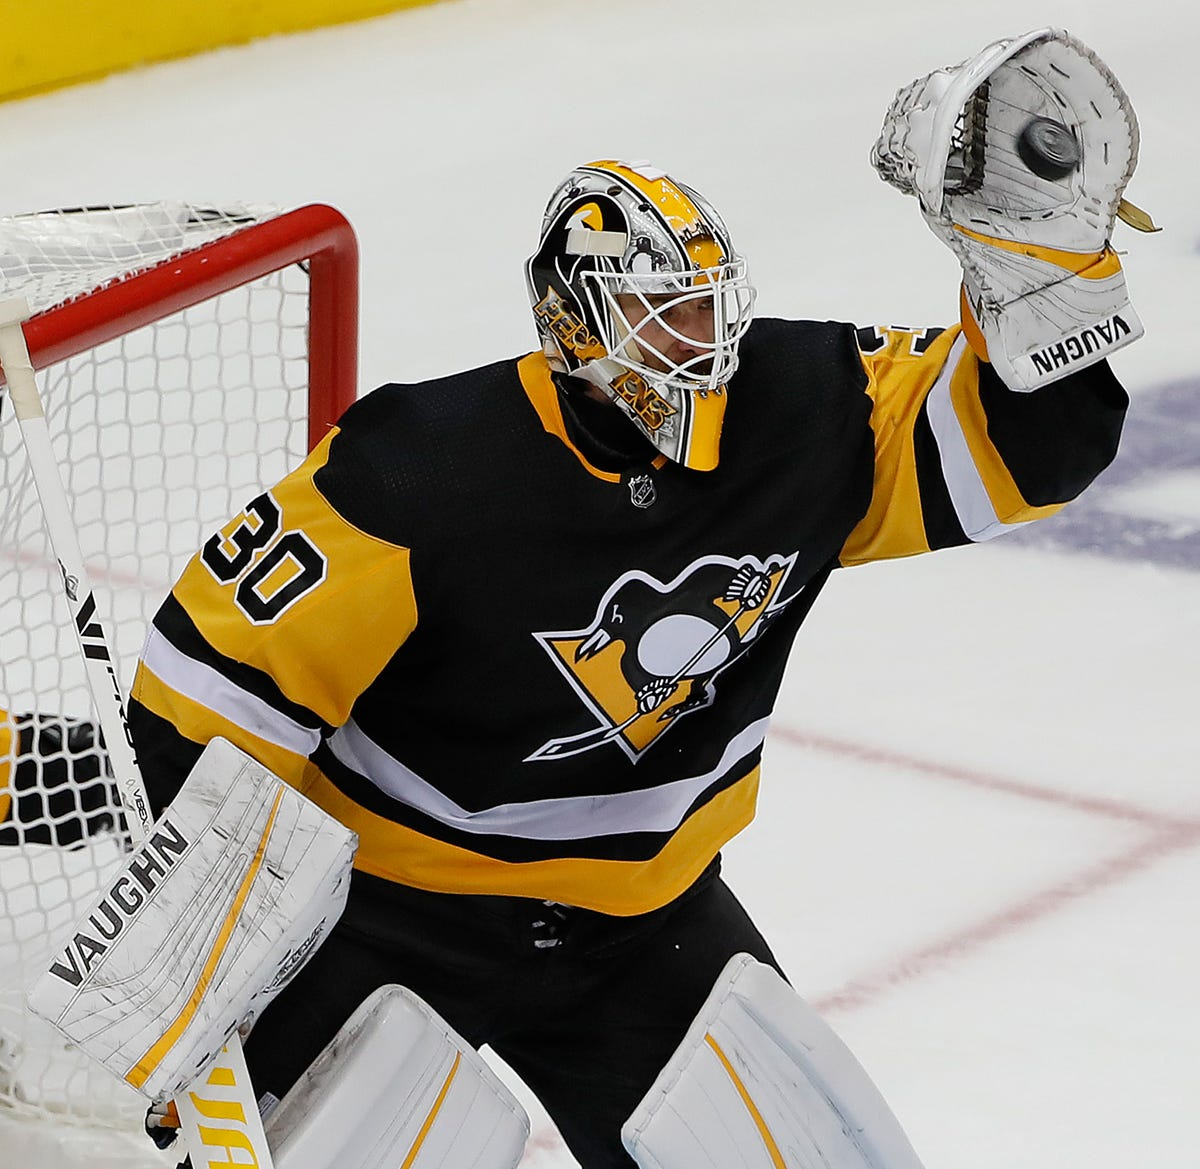 official photos 169fa 81165 Pittsburgh Penguins goalie Matt Murray out indefinitely with ...